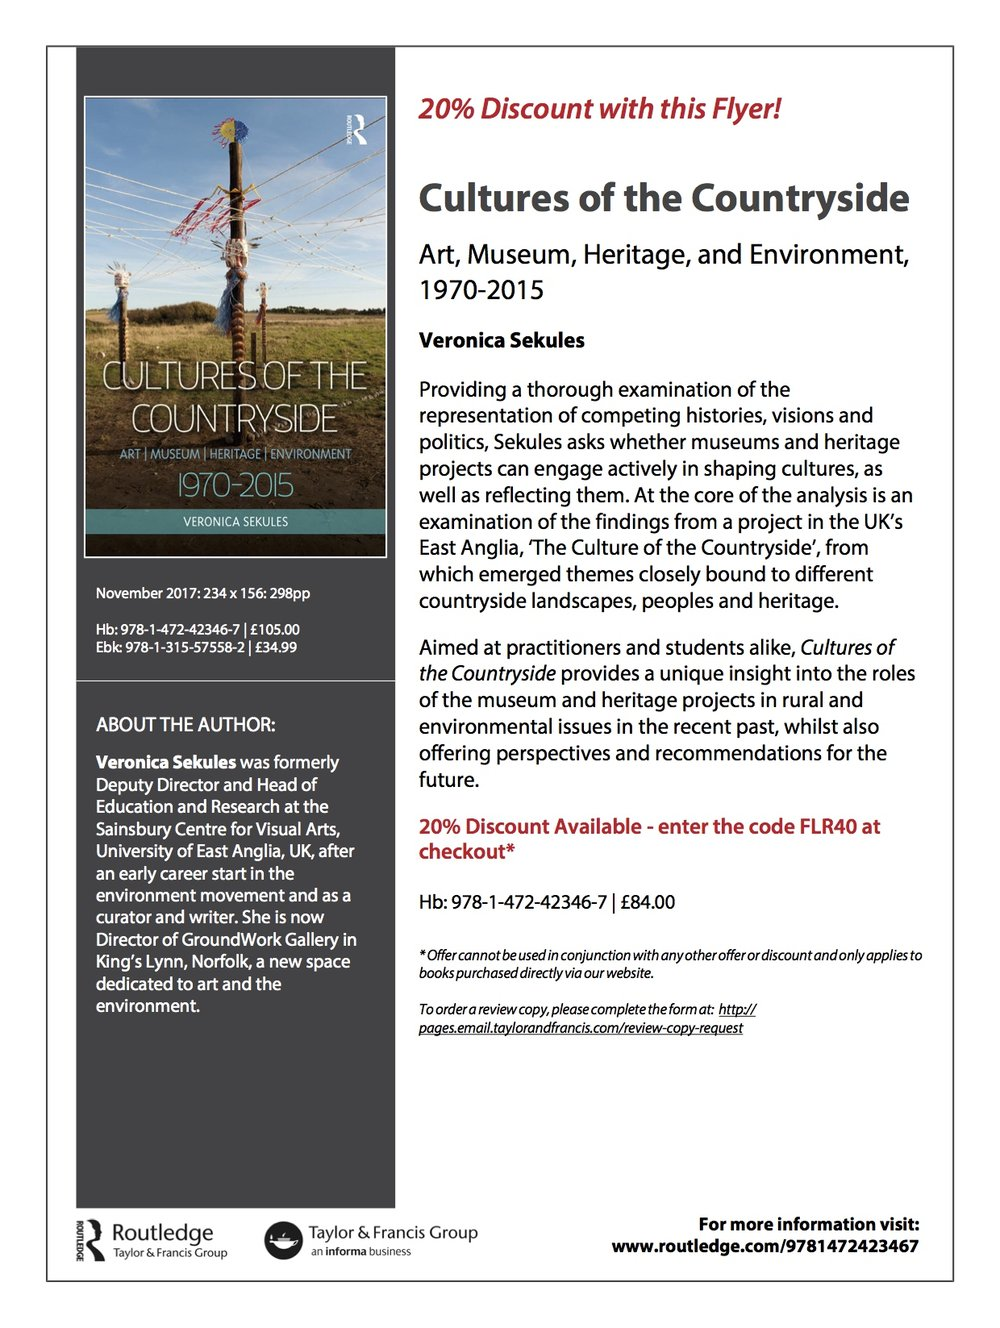 Further information at:  www.routledge.com/9781472423467